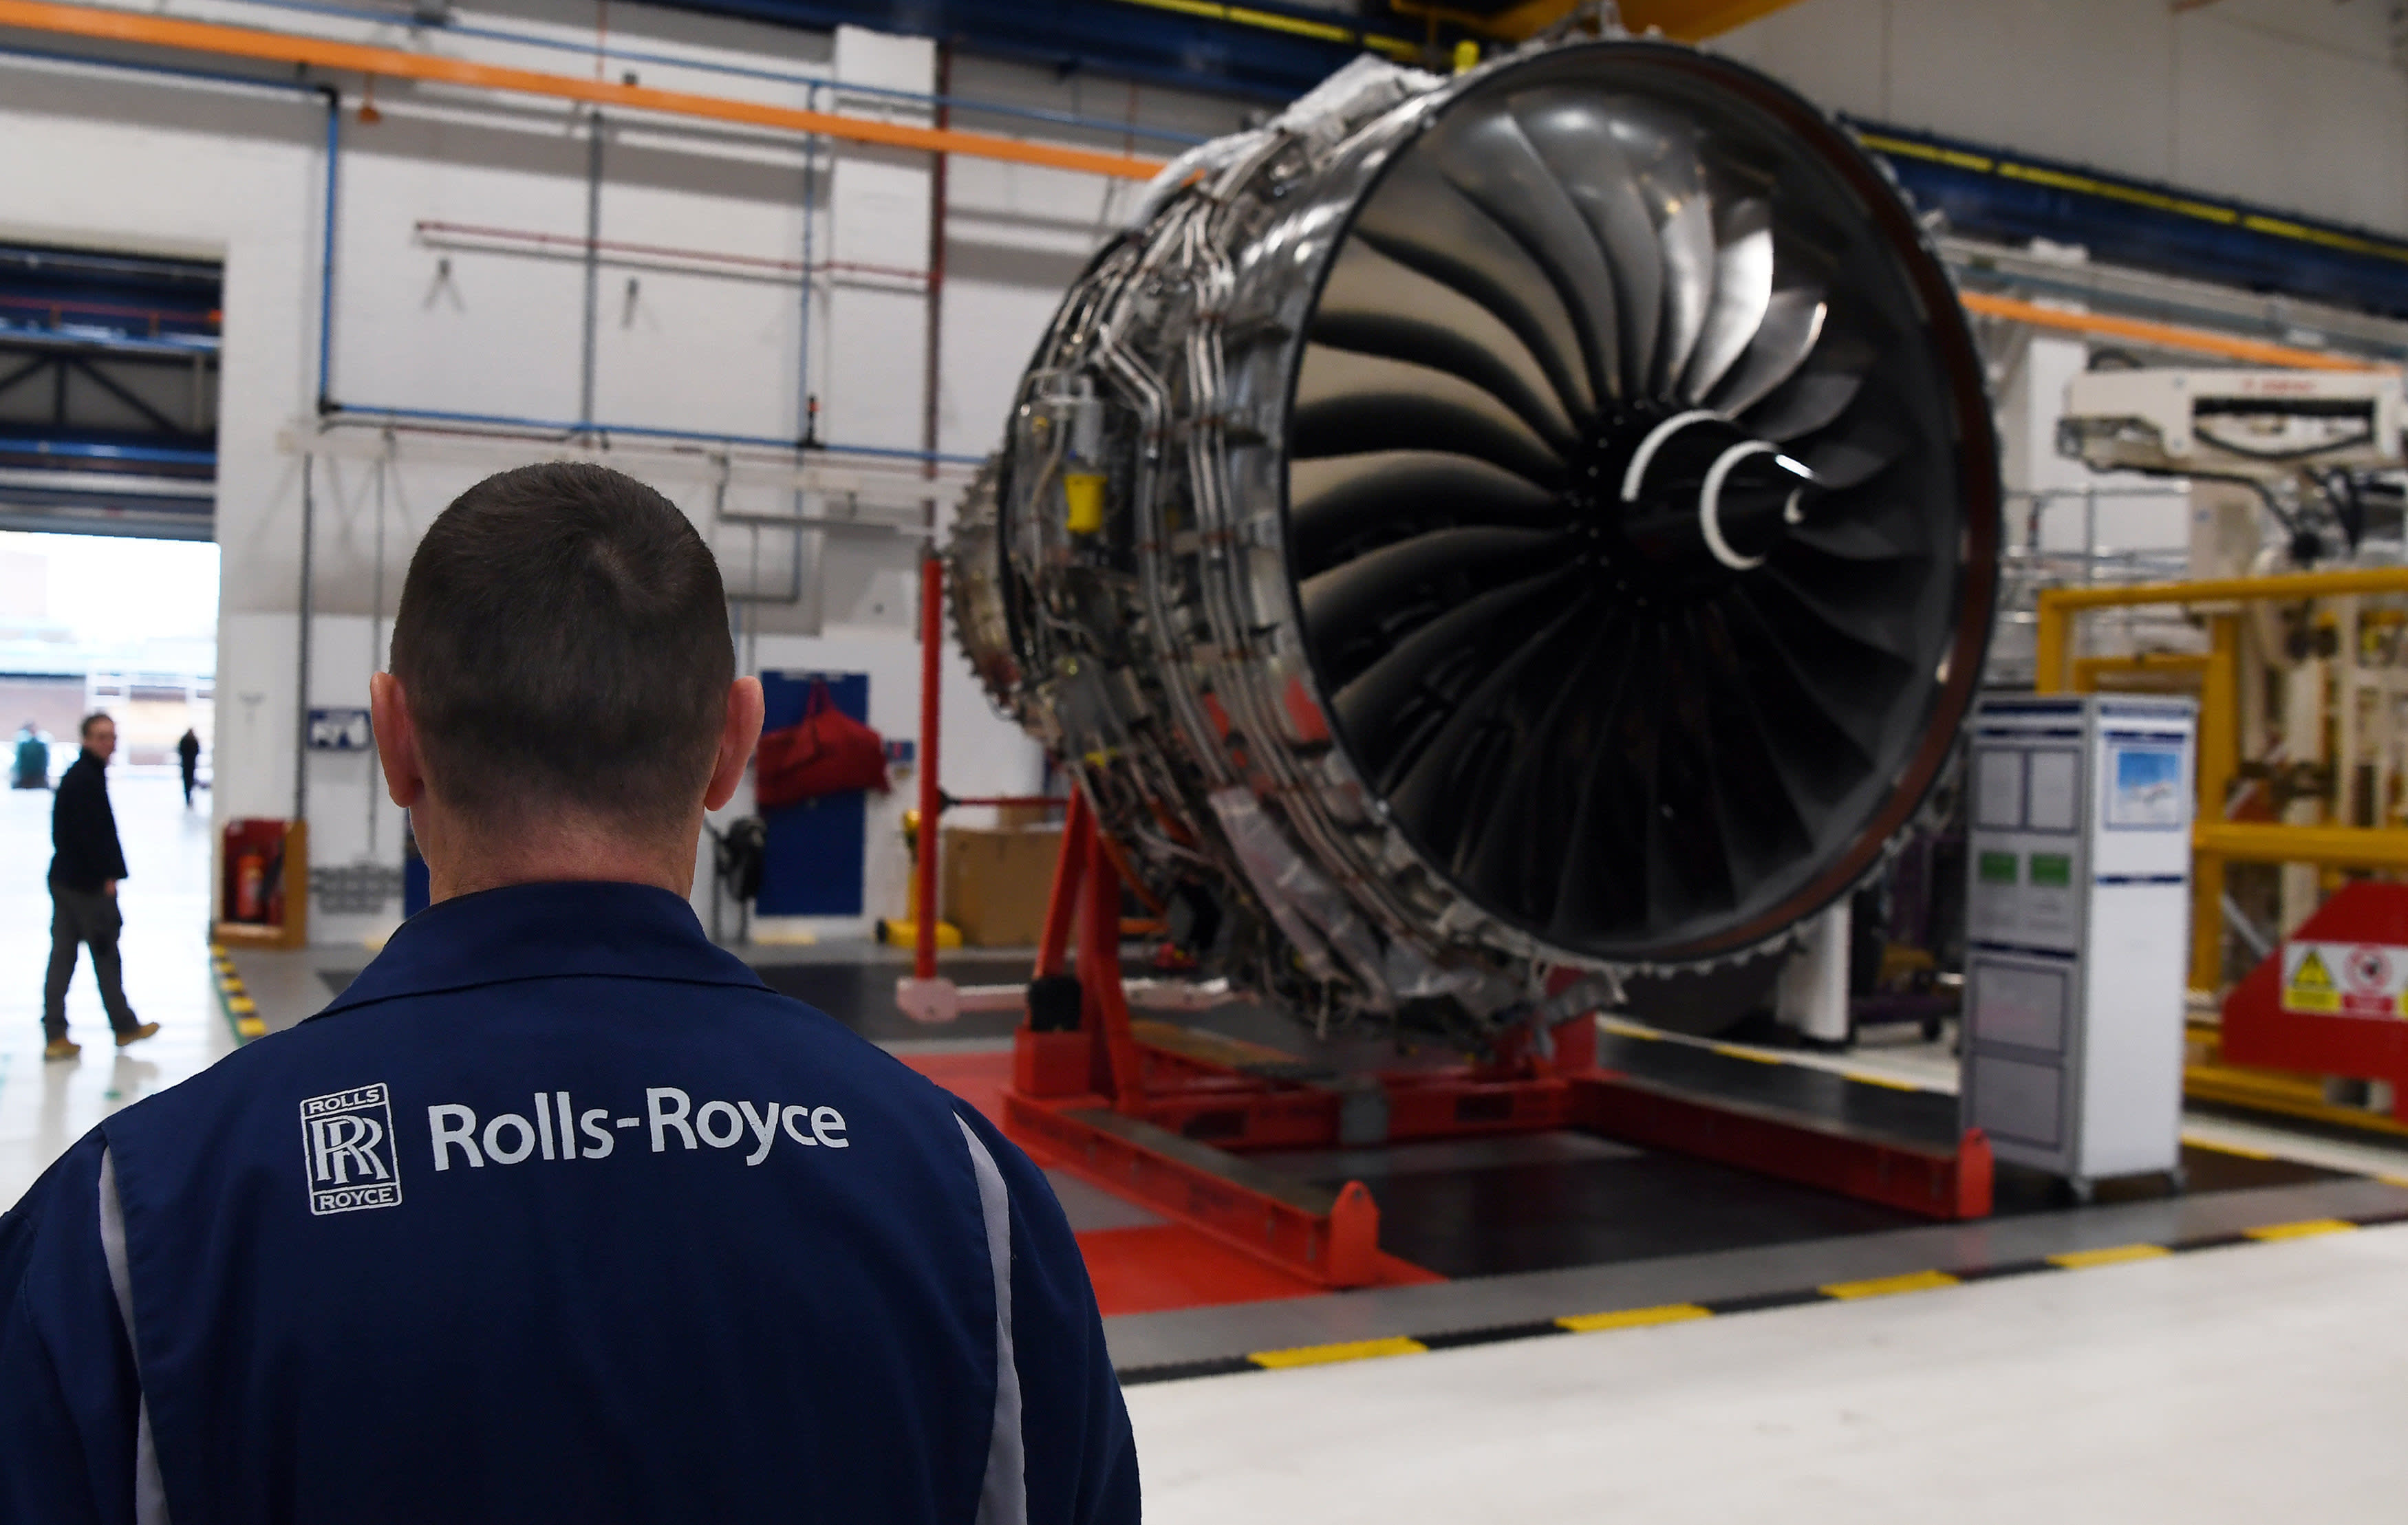 Rolls Royce signs £4.6bn pension deal with L&G